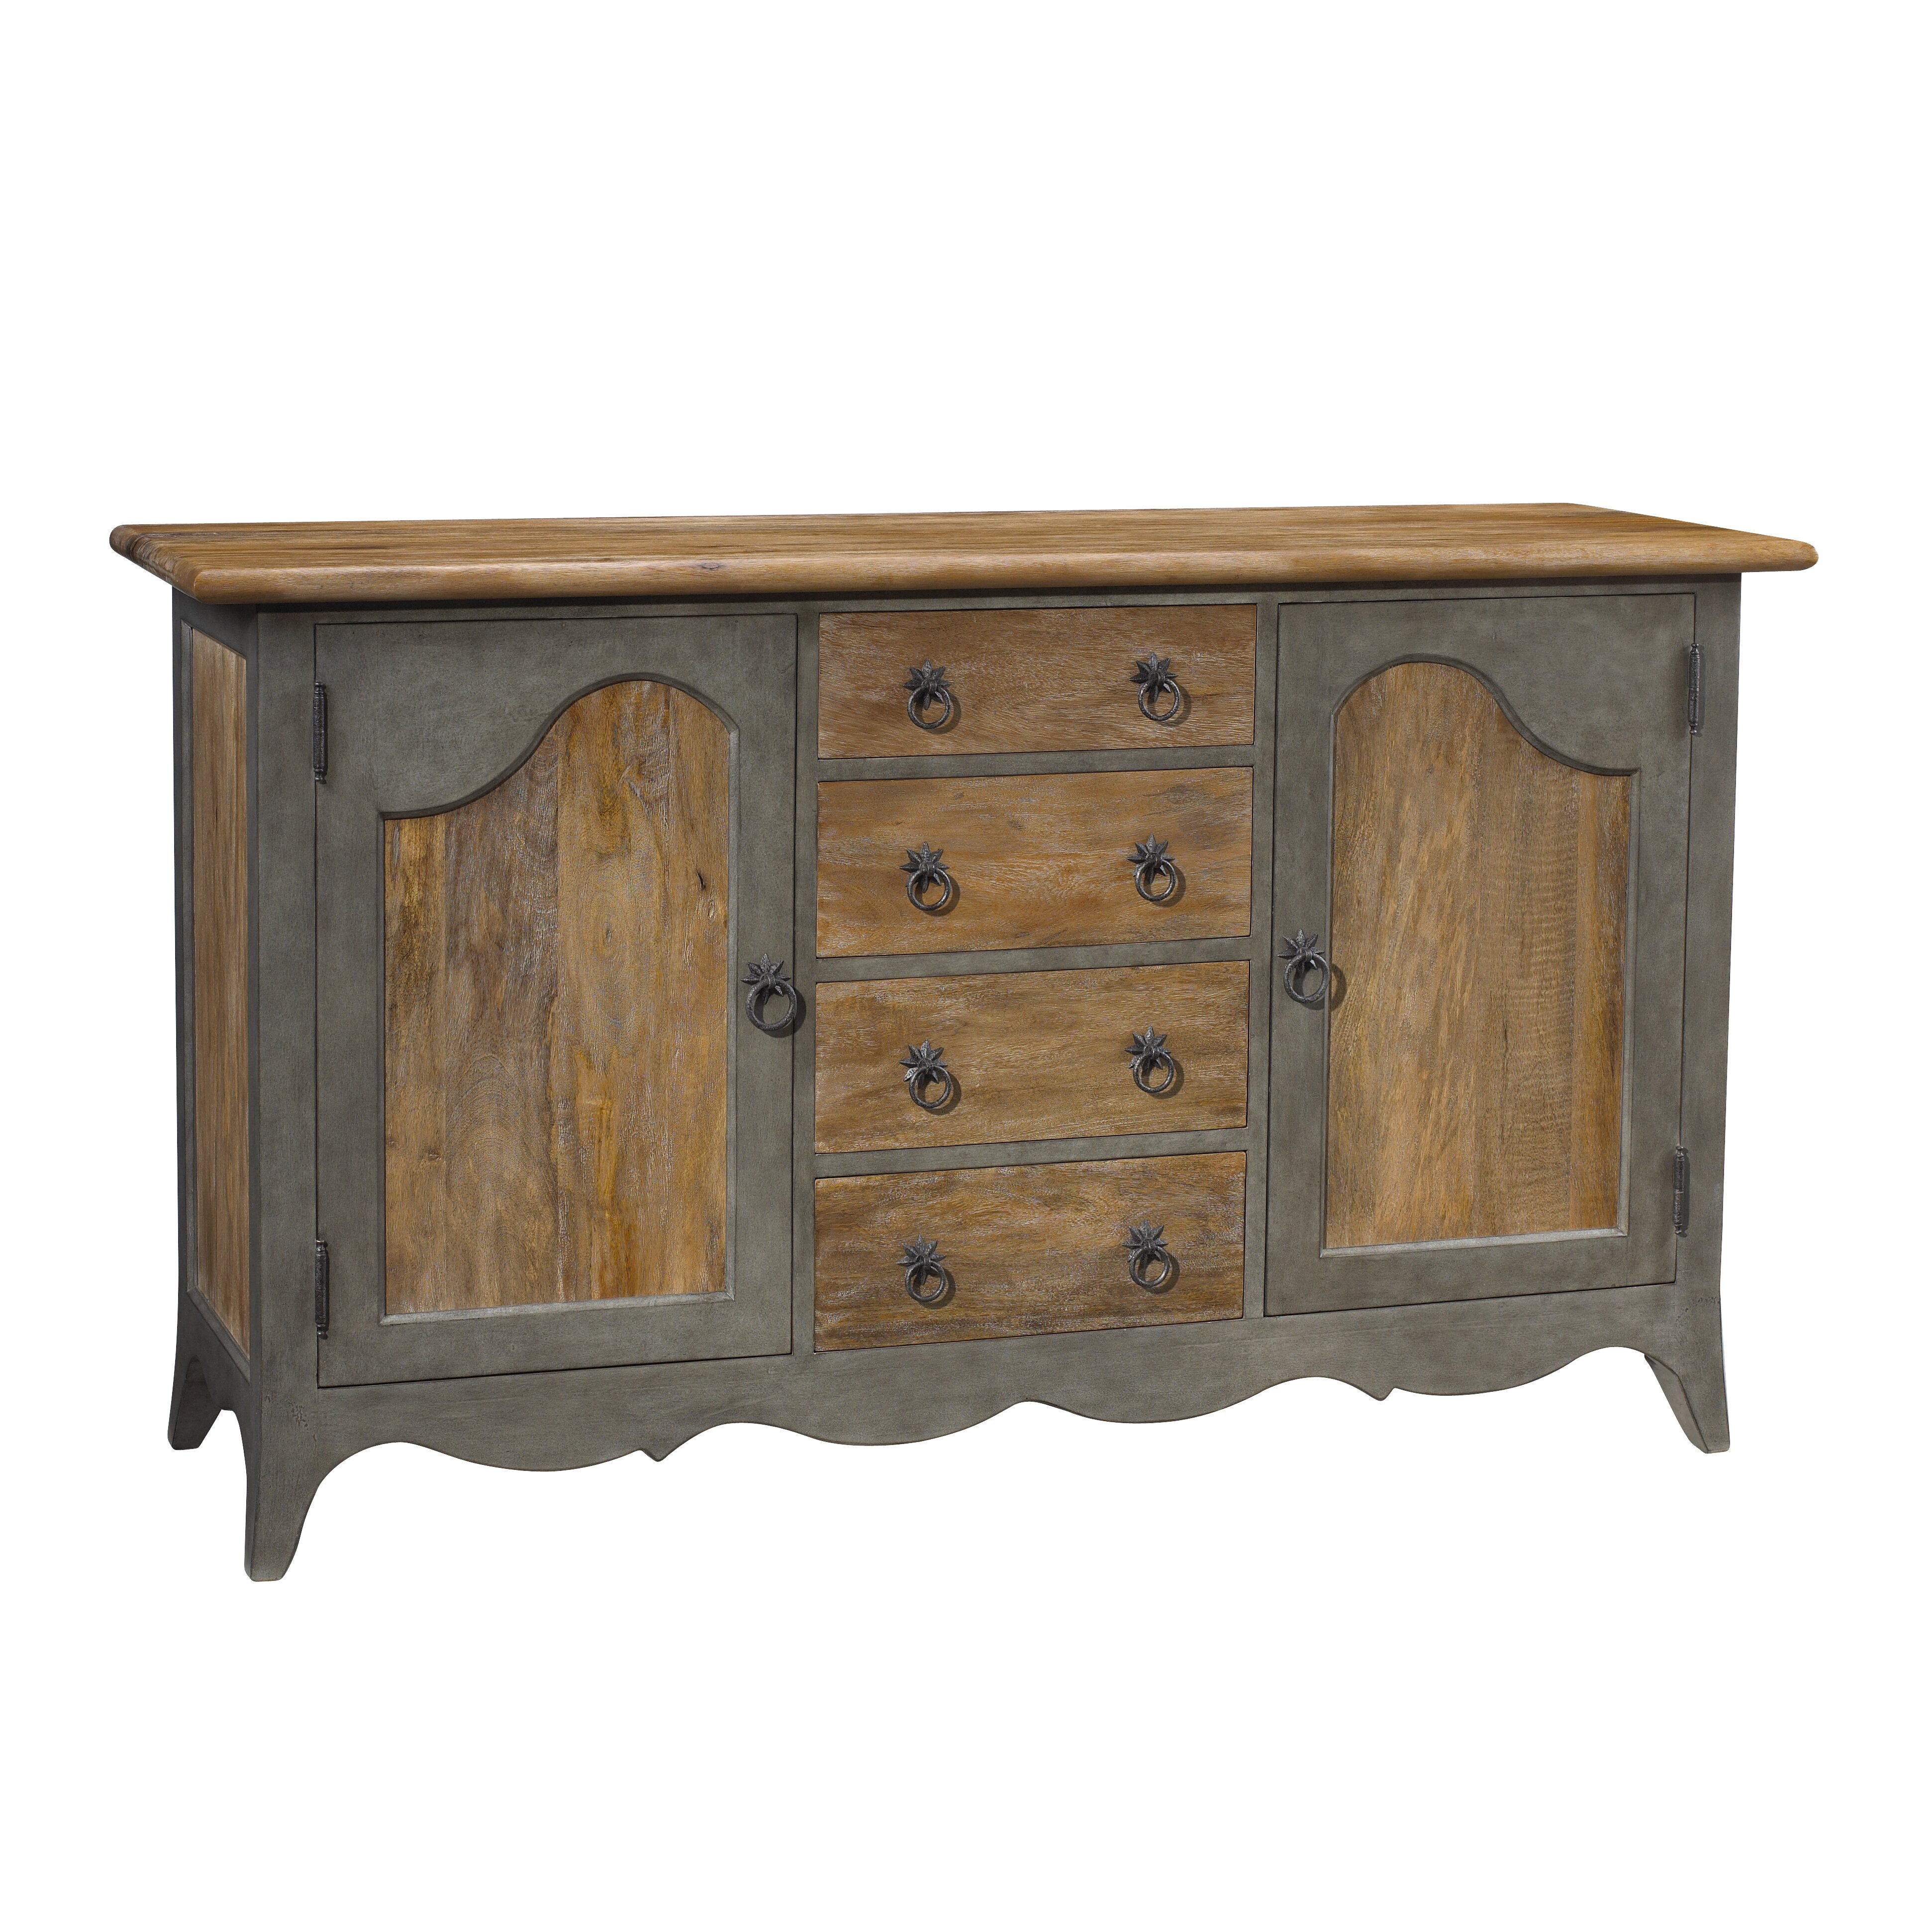 French Heritage Pyrenees Sideboard